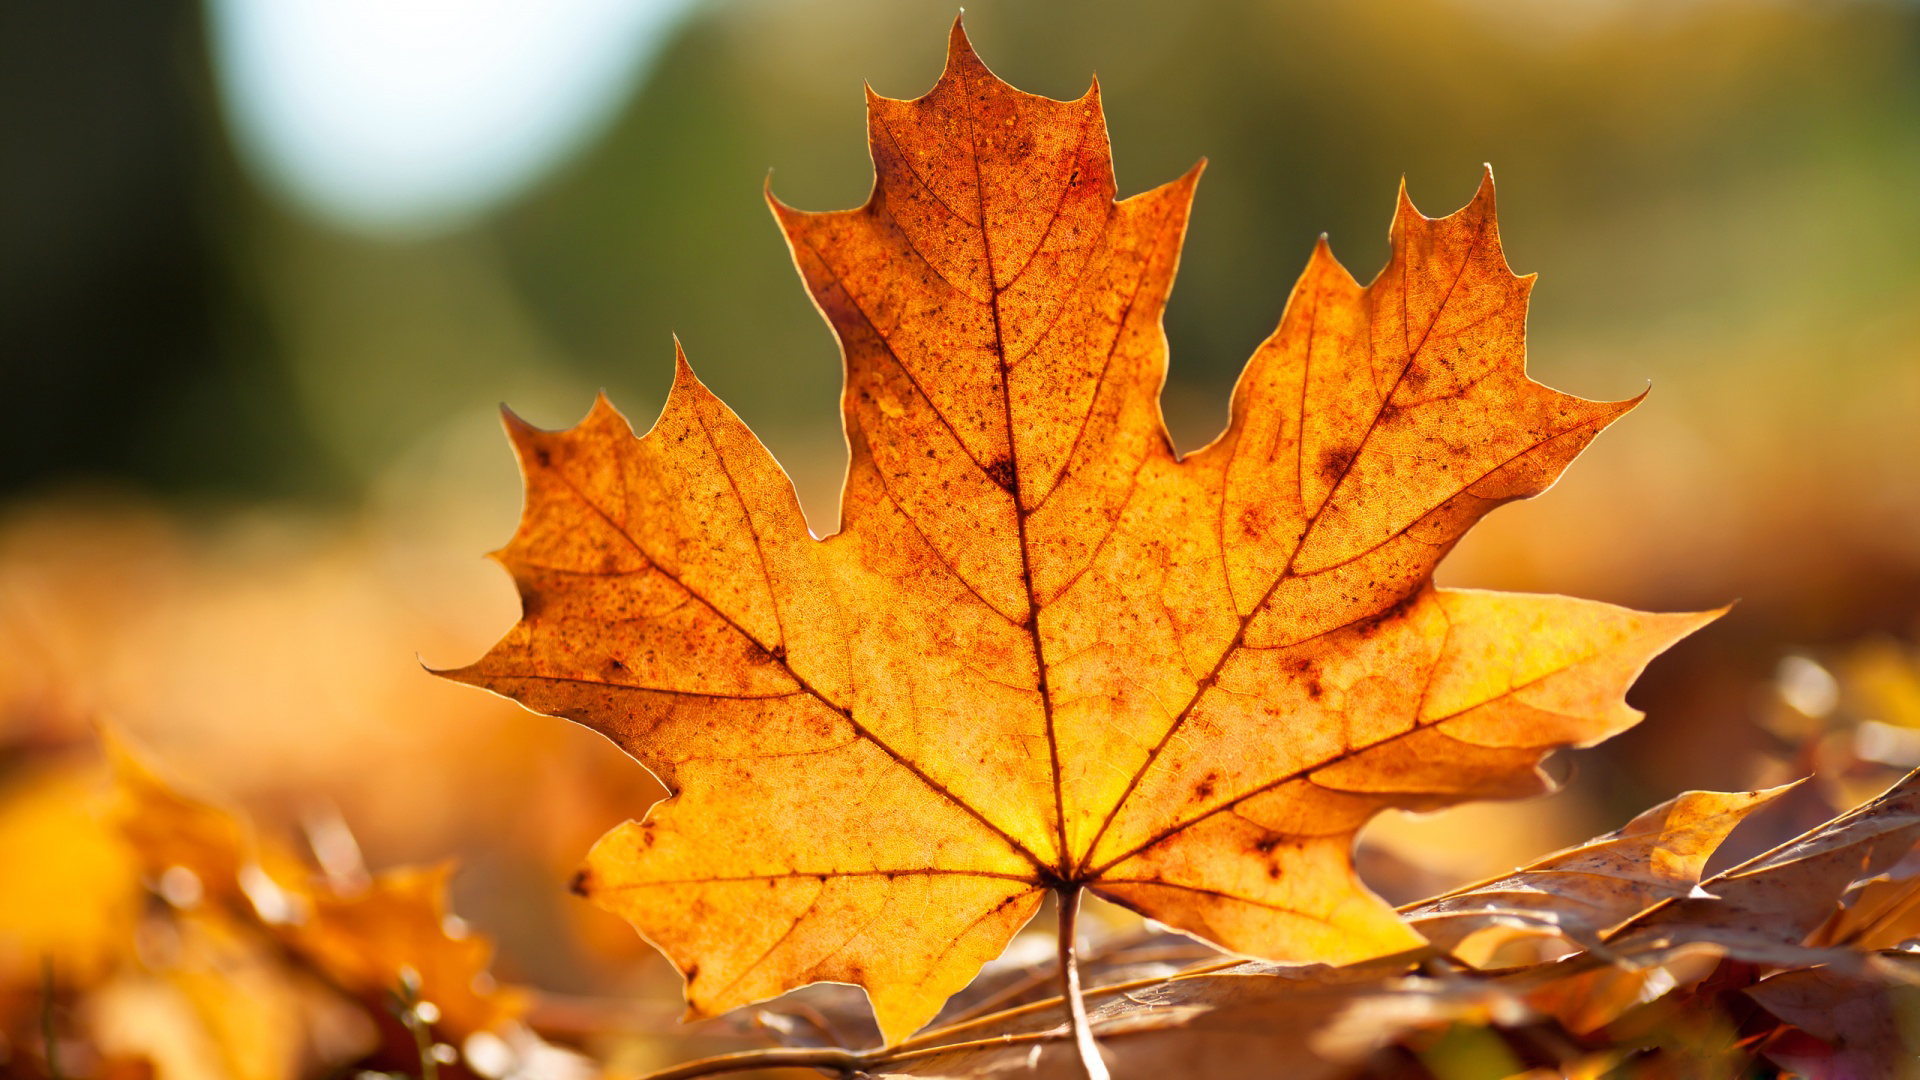 Desktop autumn fall leaves photos hd.